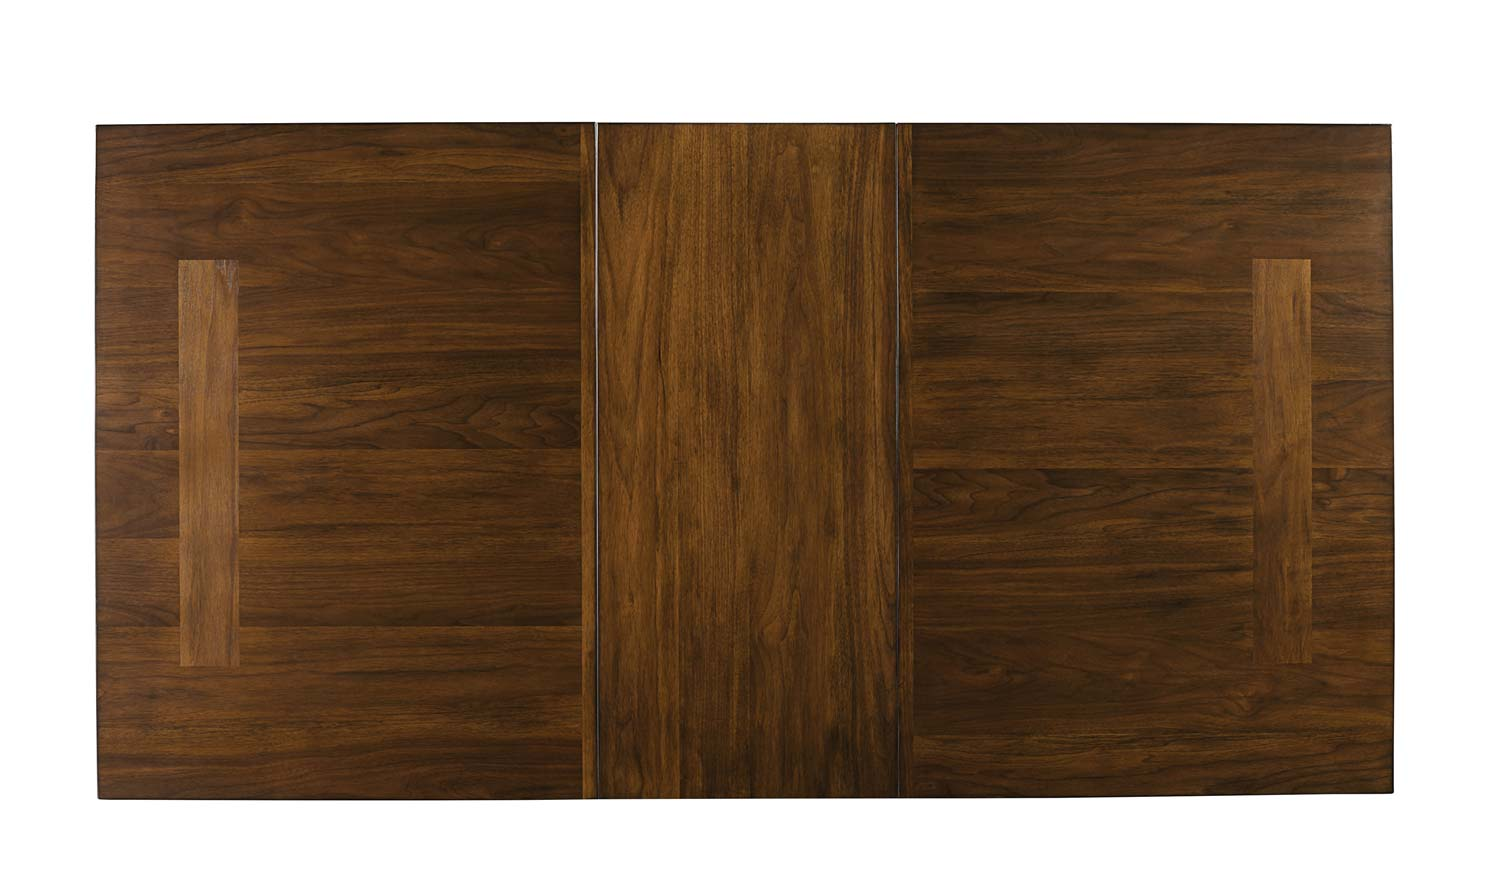 Homelegance Sedley Dining Table - Walnut